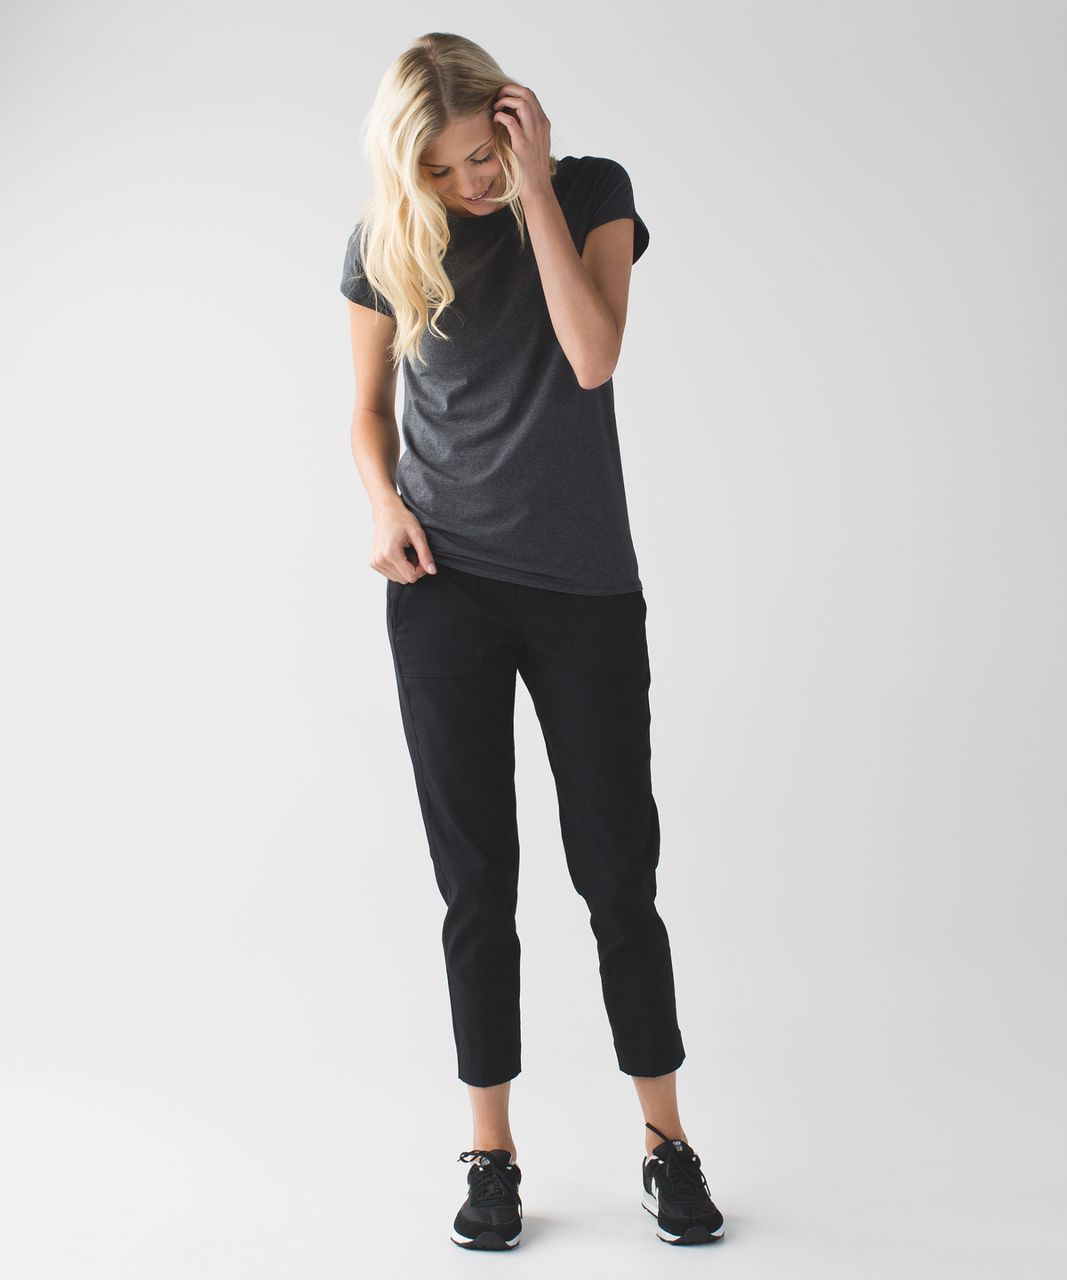 Lululemon &go Take You There Trouser - Black